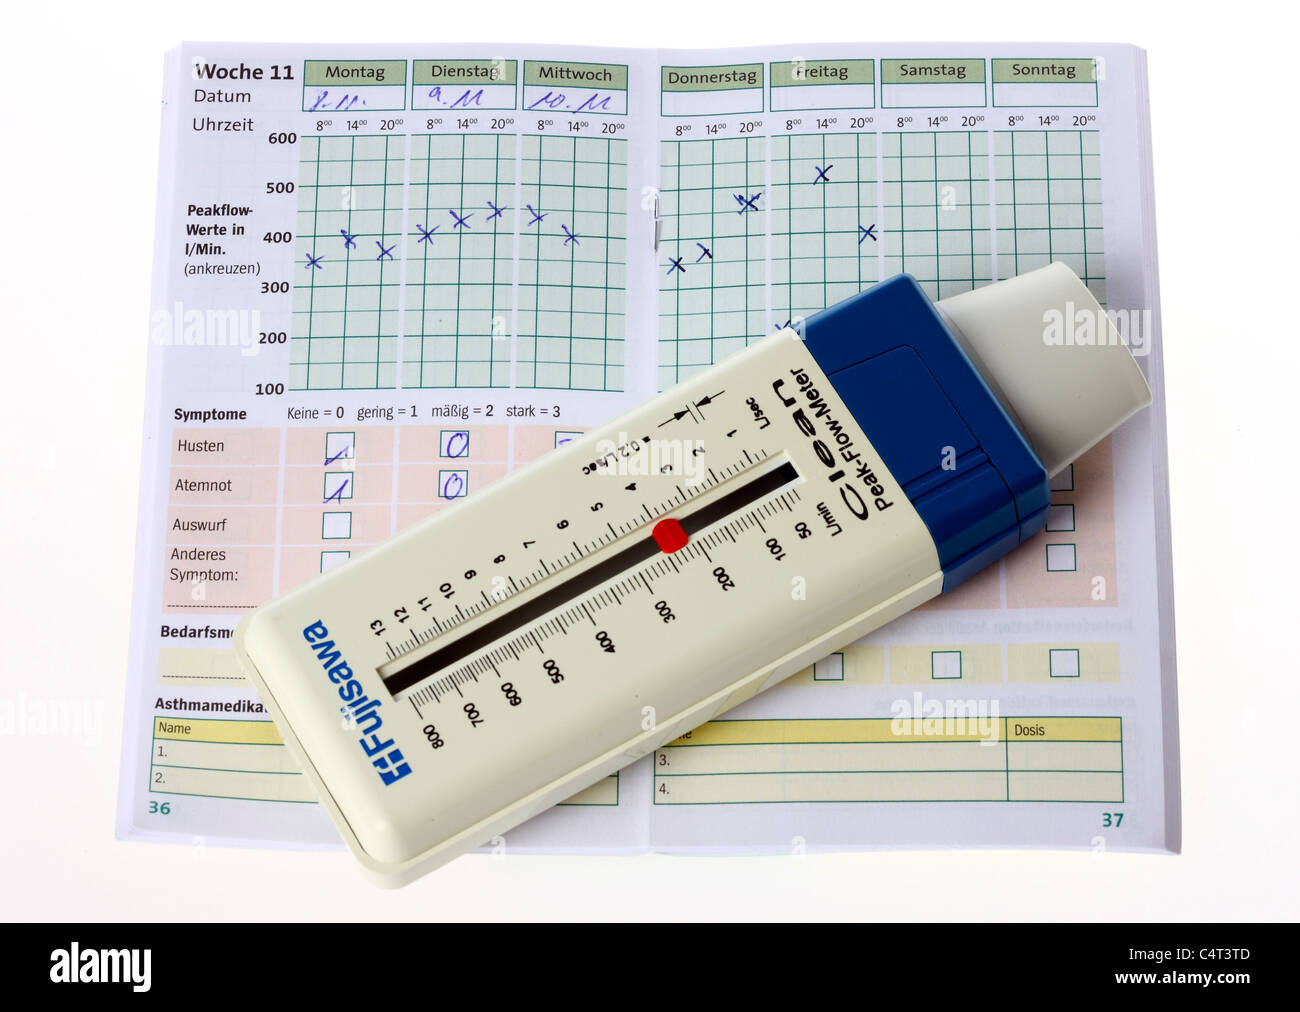 Measuring instrument for volumetric respiratory flow, necessary tool for asthma patients. Peak flow meter. - Stock Image